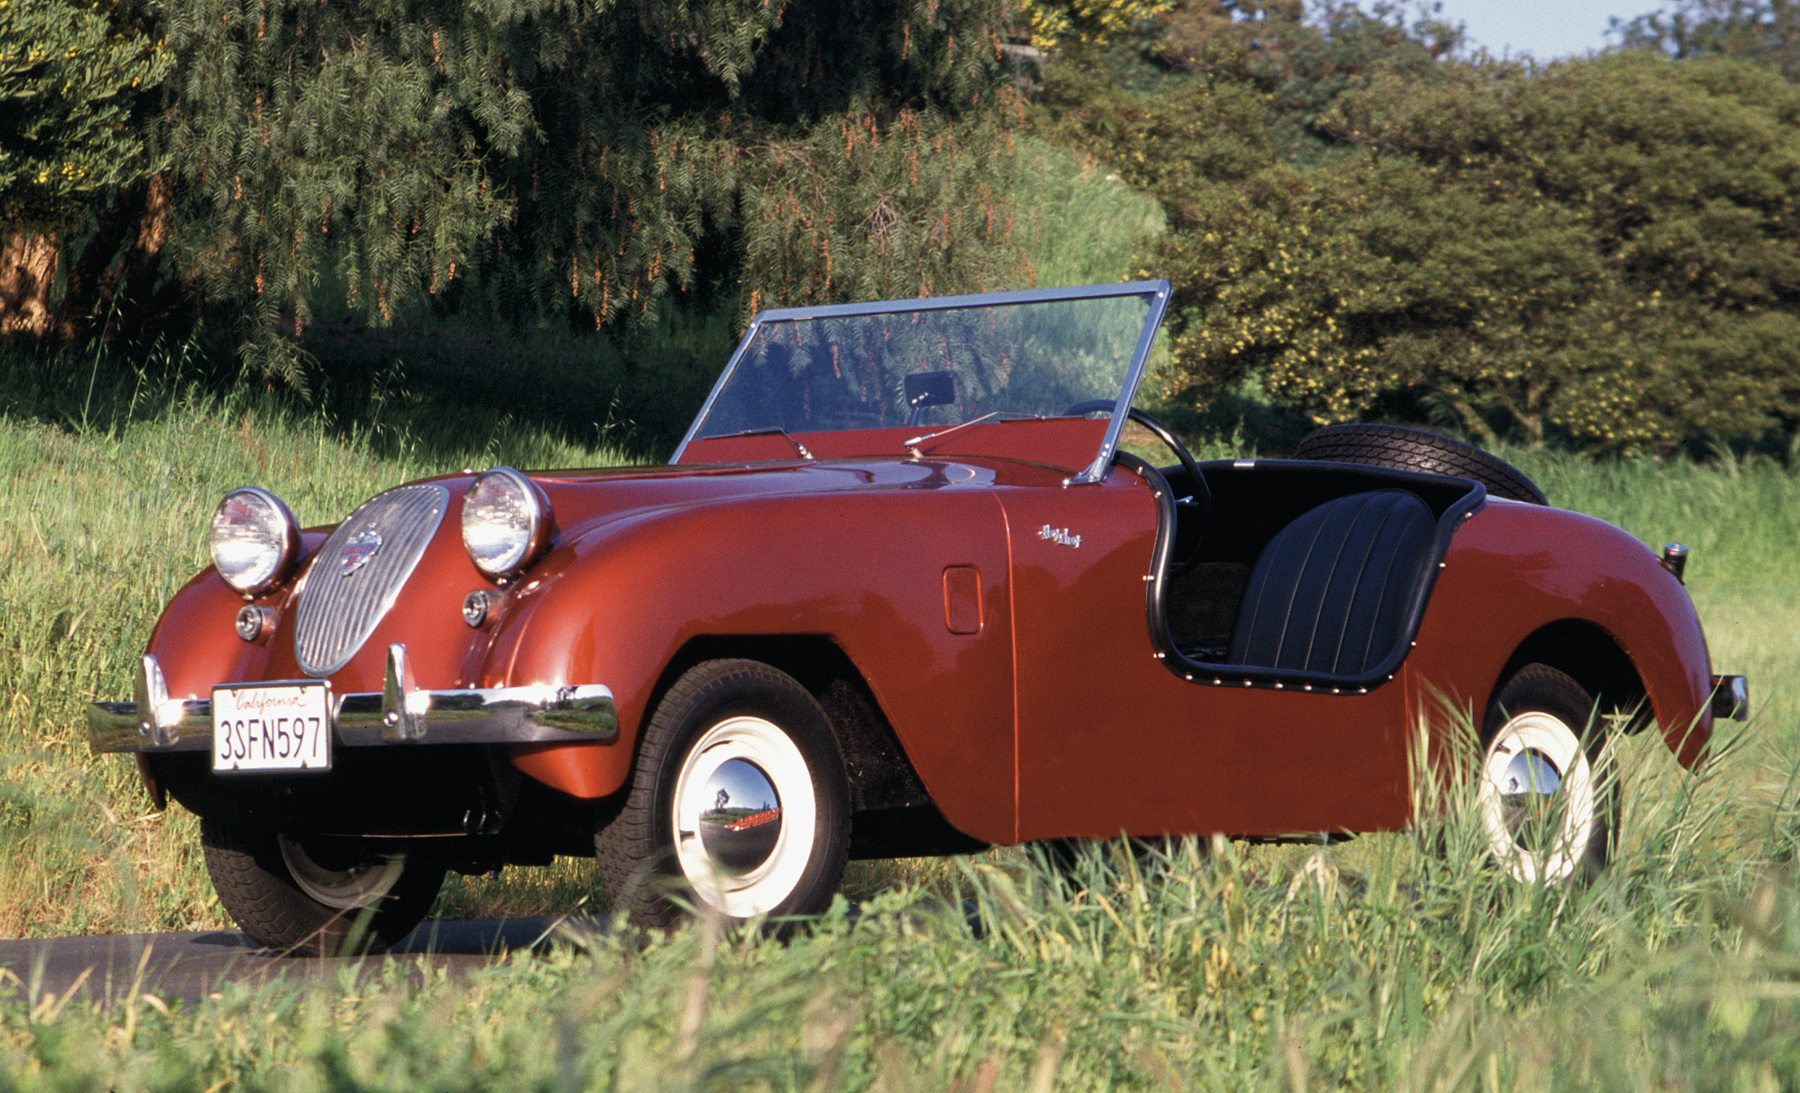 Crosley Hot Shot red roof down in grass